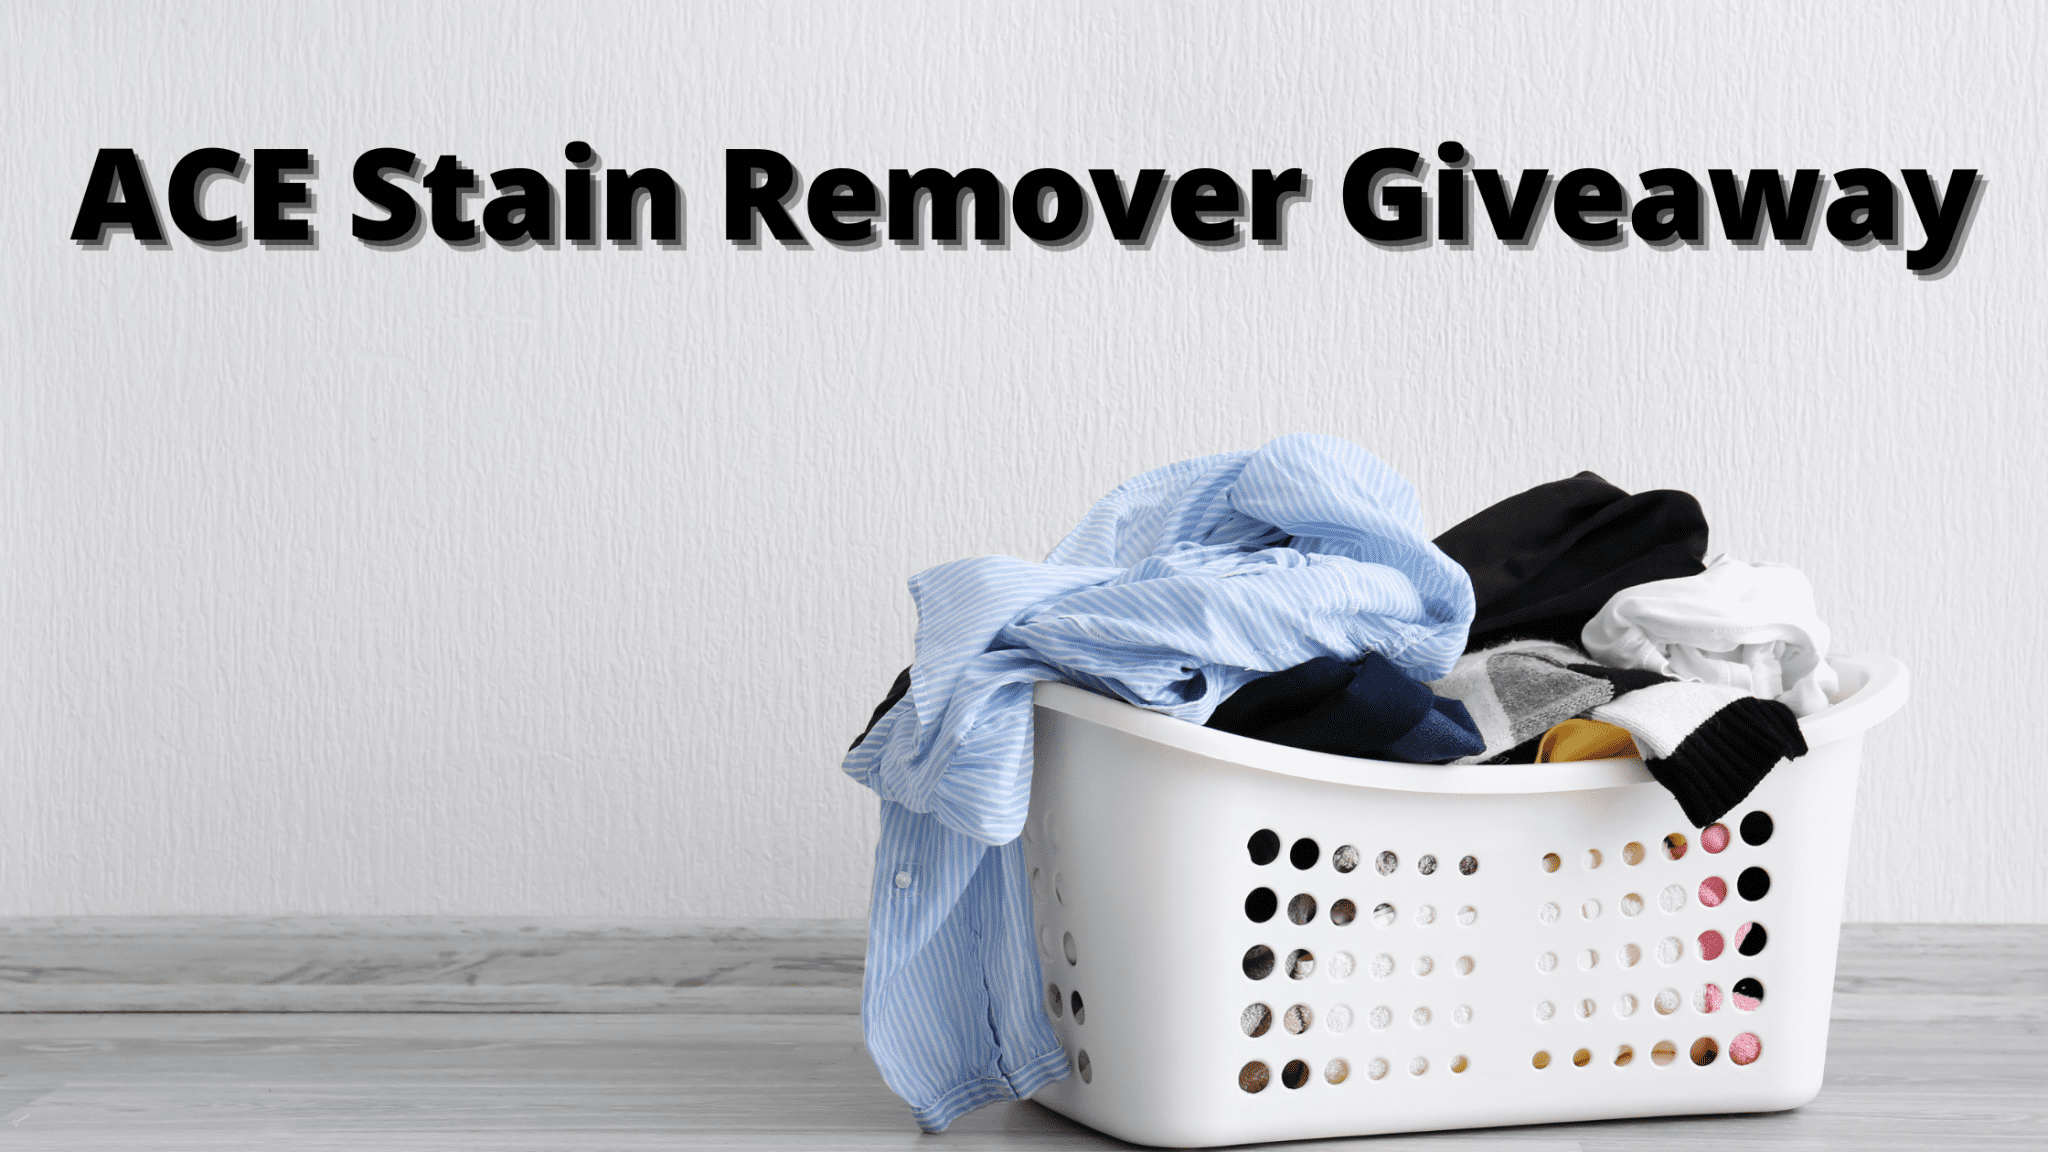 ACE Stain Remover Giveaway